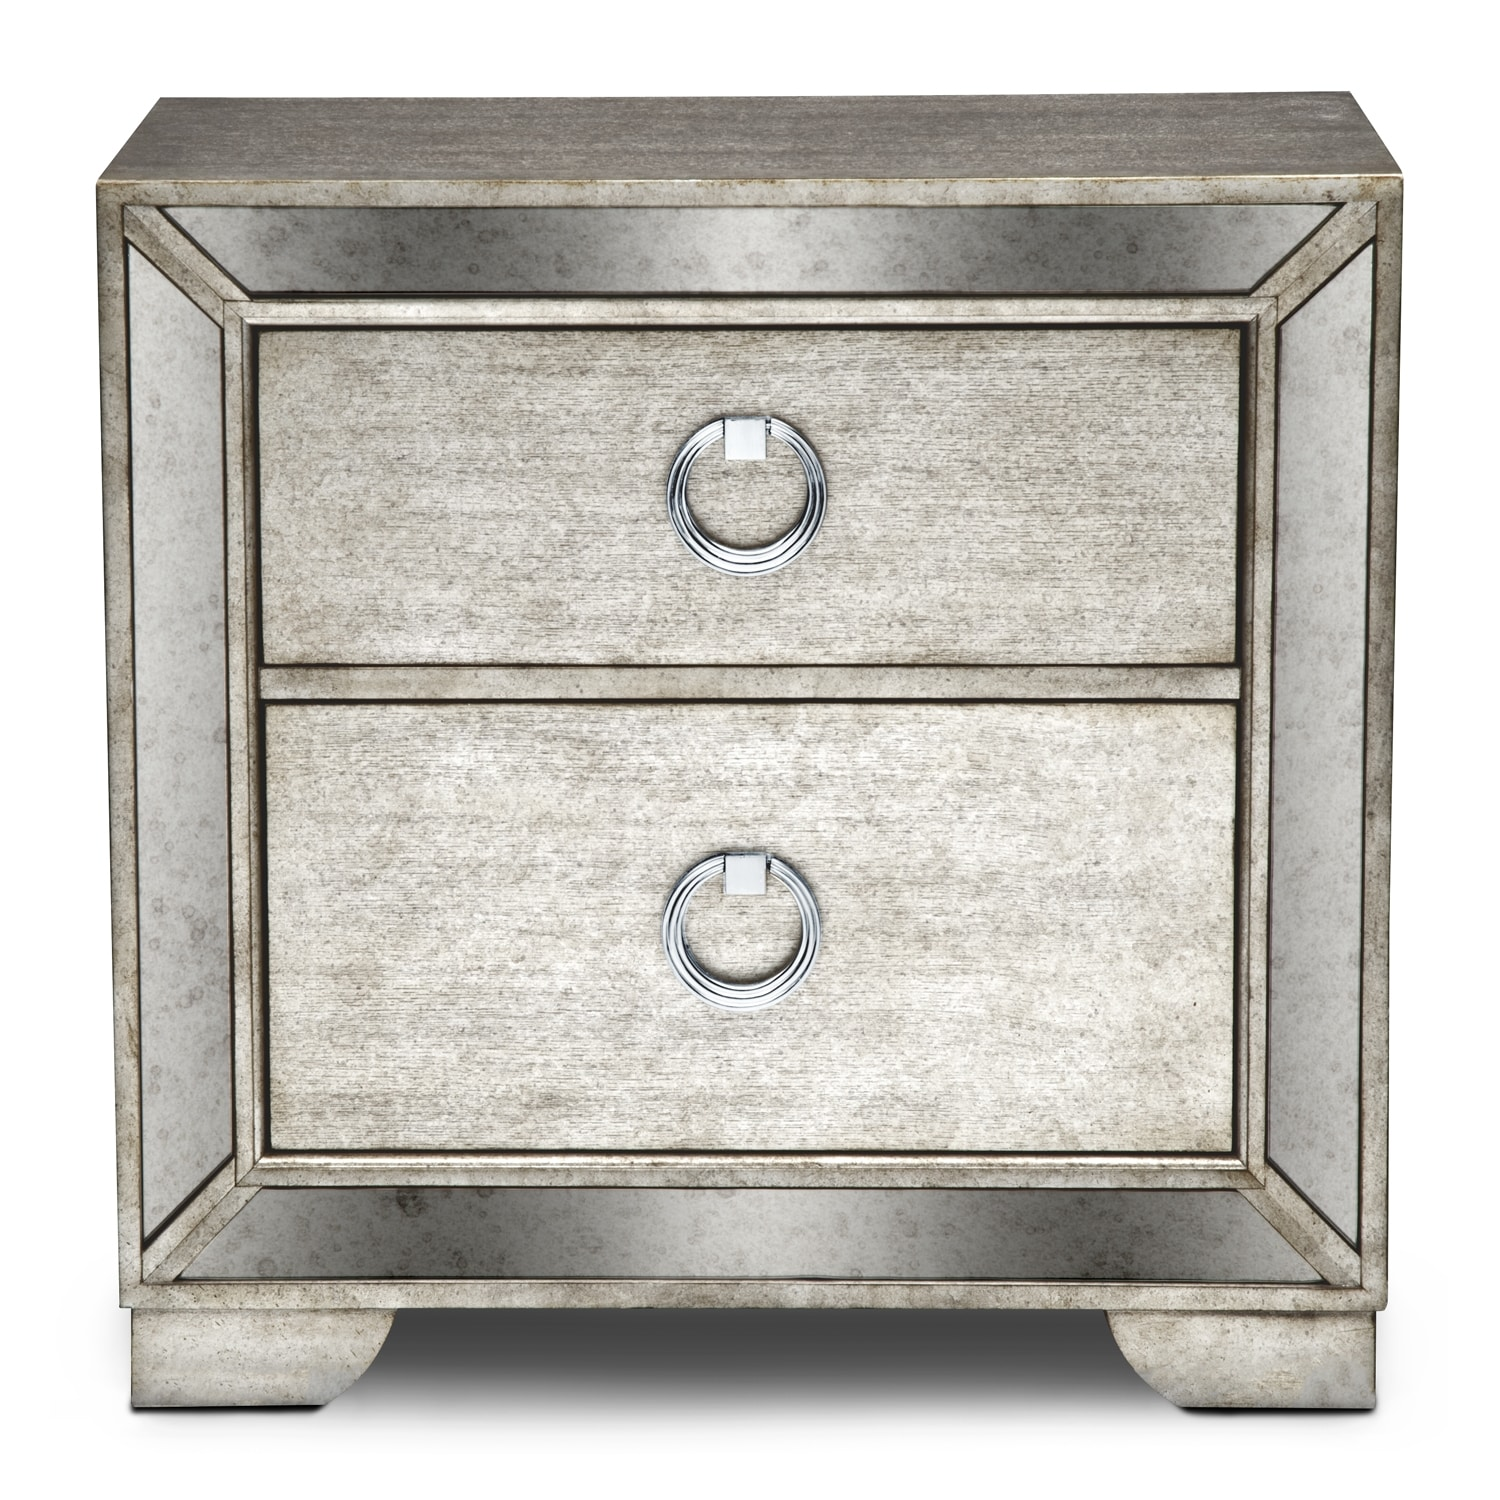 in piece the out painted furniture of metallic she picked candy n dresser is this mediterranean